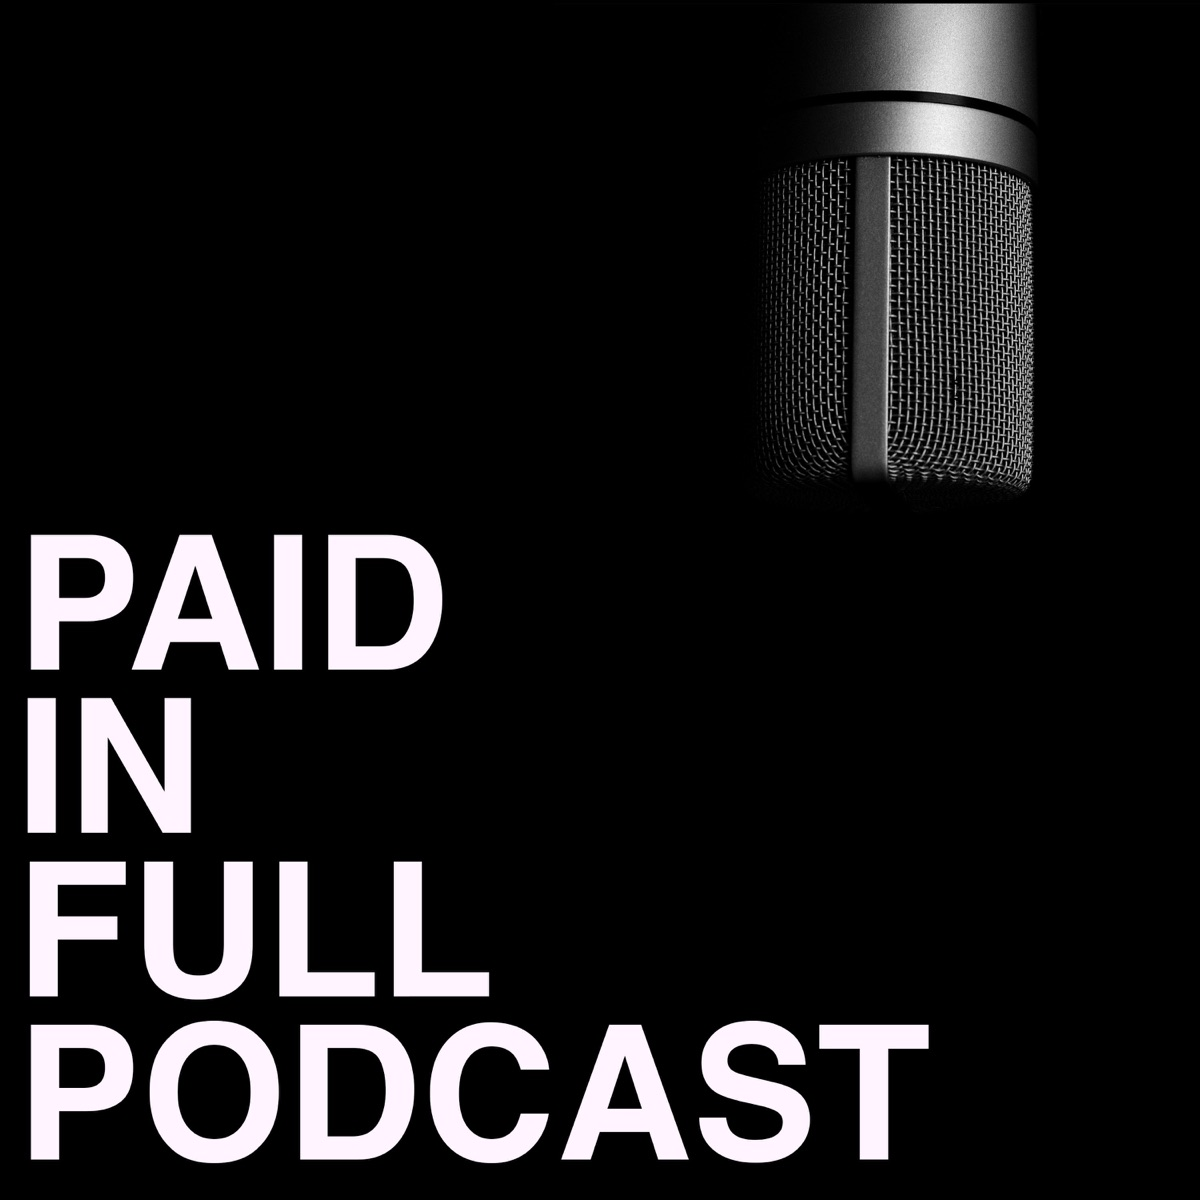 Paid In Full Podcast